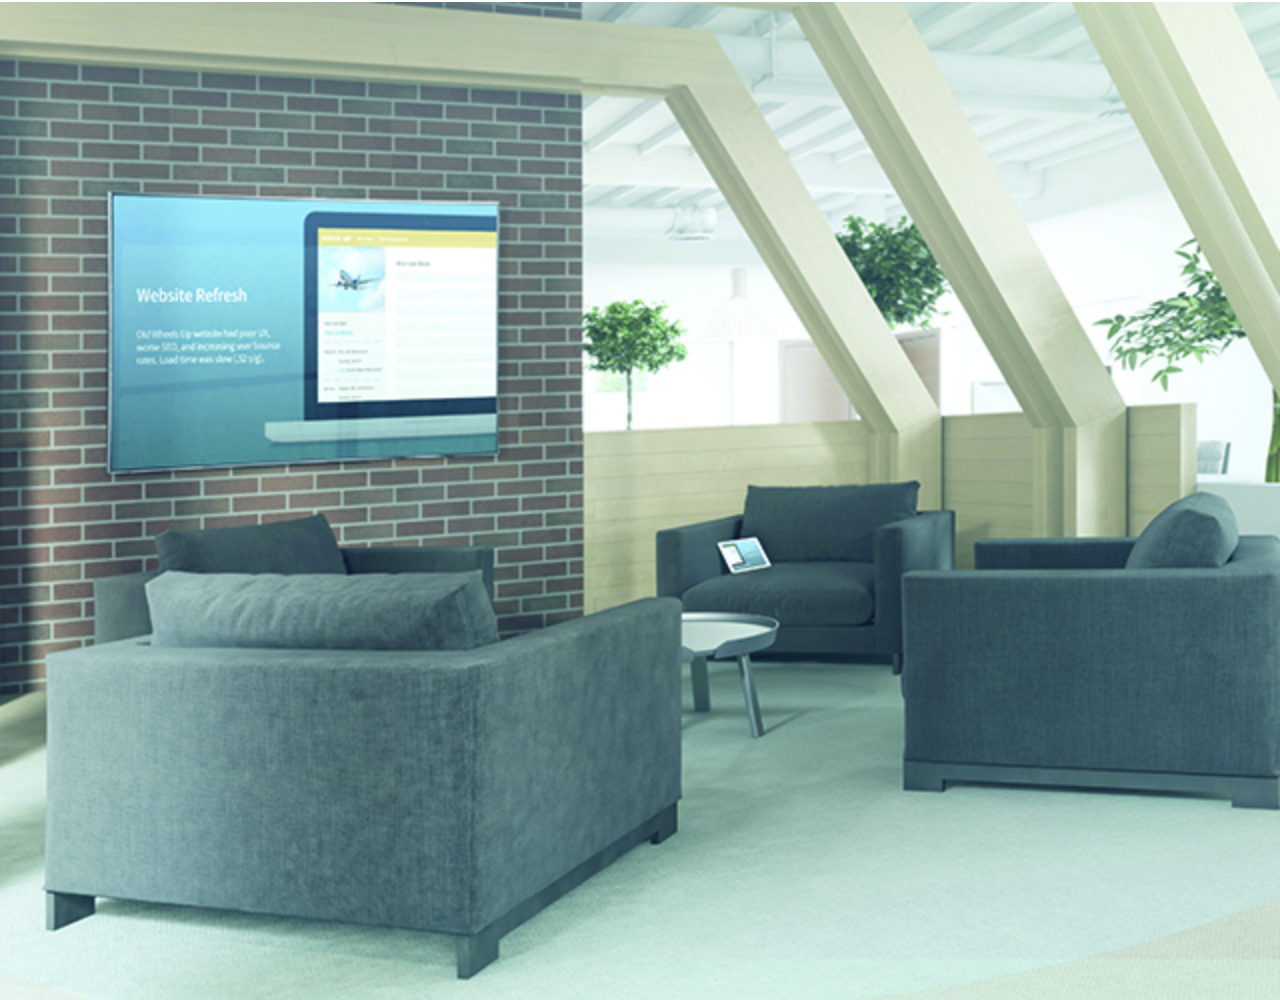 Open Presentation SpaceOpen Presentation Space - Increase workflow and facilitate collaboration by turning lobbies, lounges, and other open spaces into productive meeting spaces.